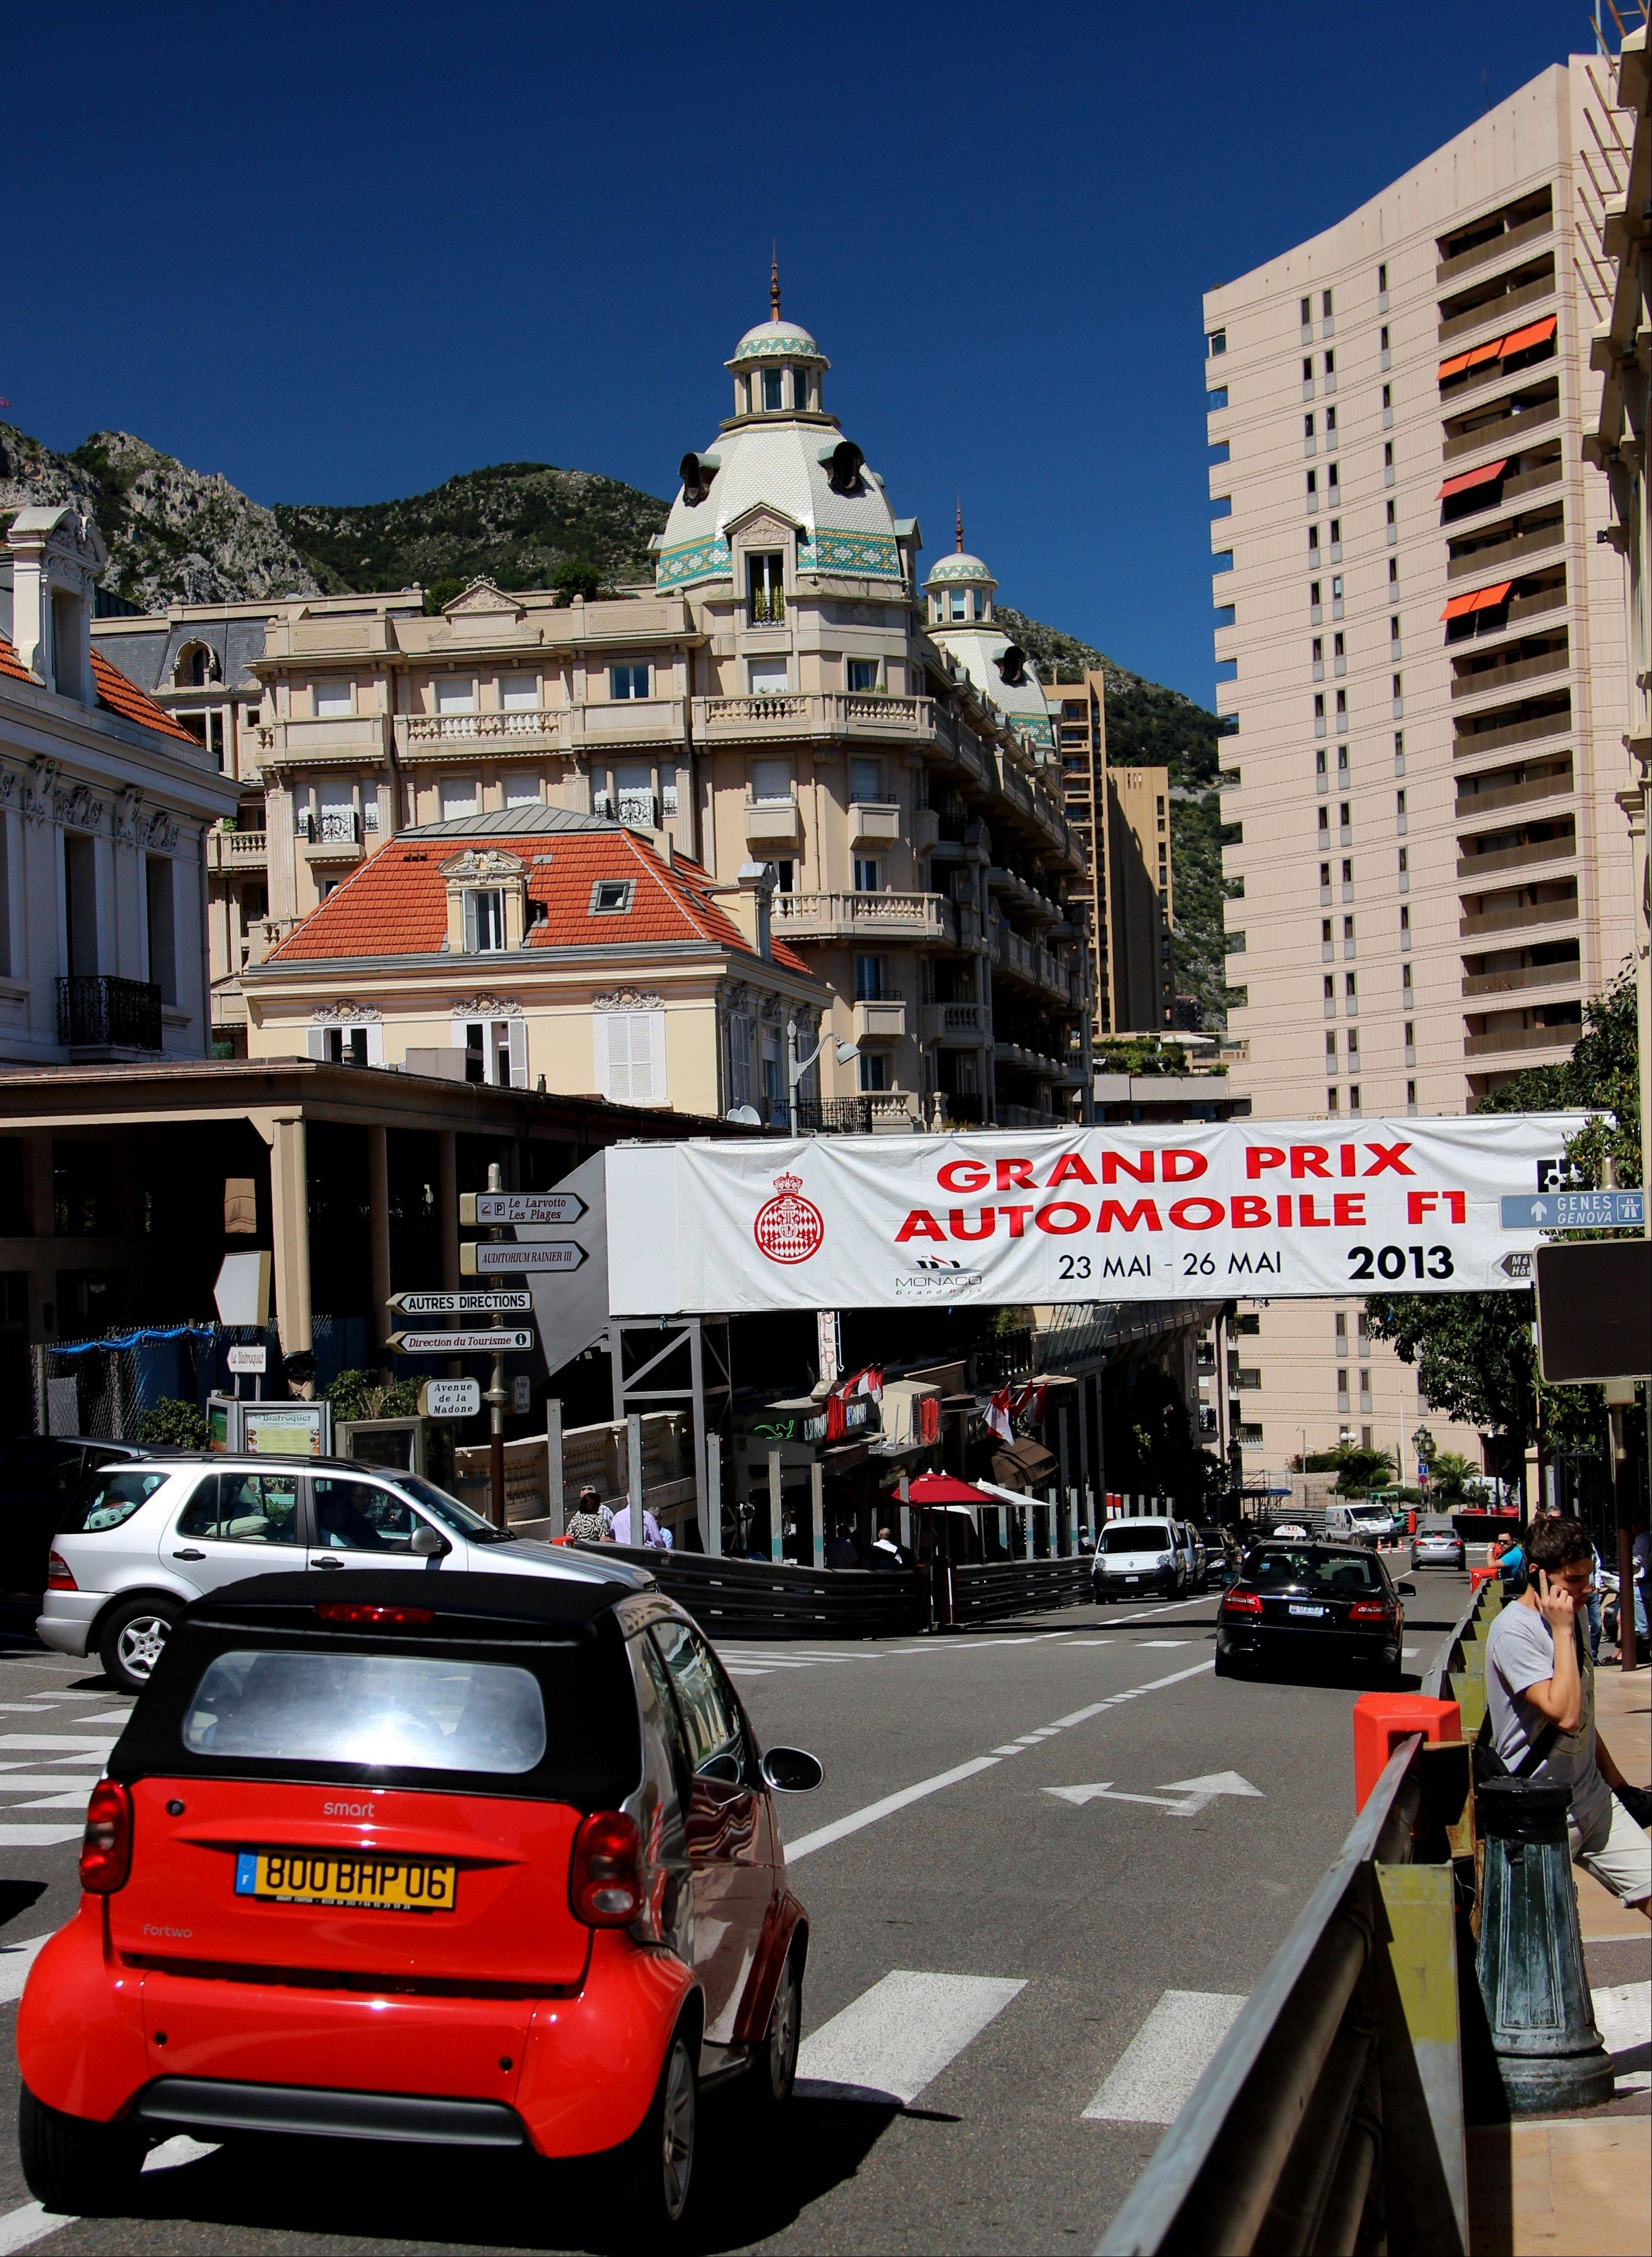 The route for the Grand Prix race in Monaco is about 2 miles long, with maps available at the Monaco tourism center. Feel free to walk the course, which takes you past the Monte Carlo Casino, along the coast and around the famous hairpin turn in front of the Fairmont hotel.